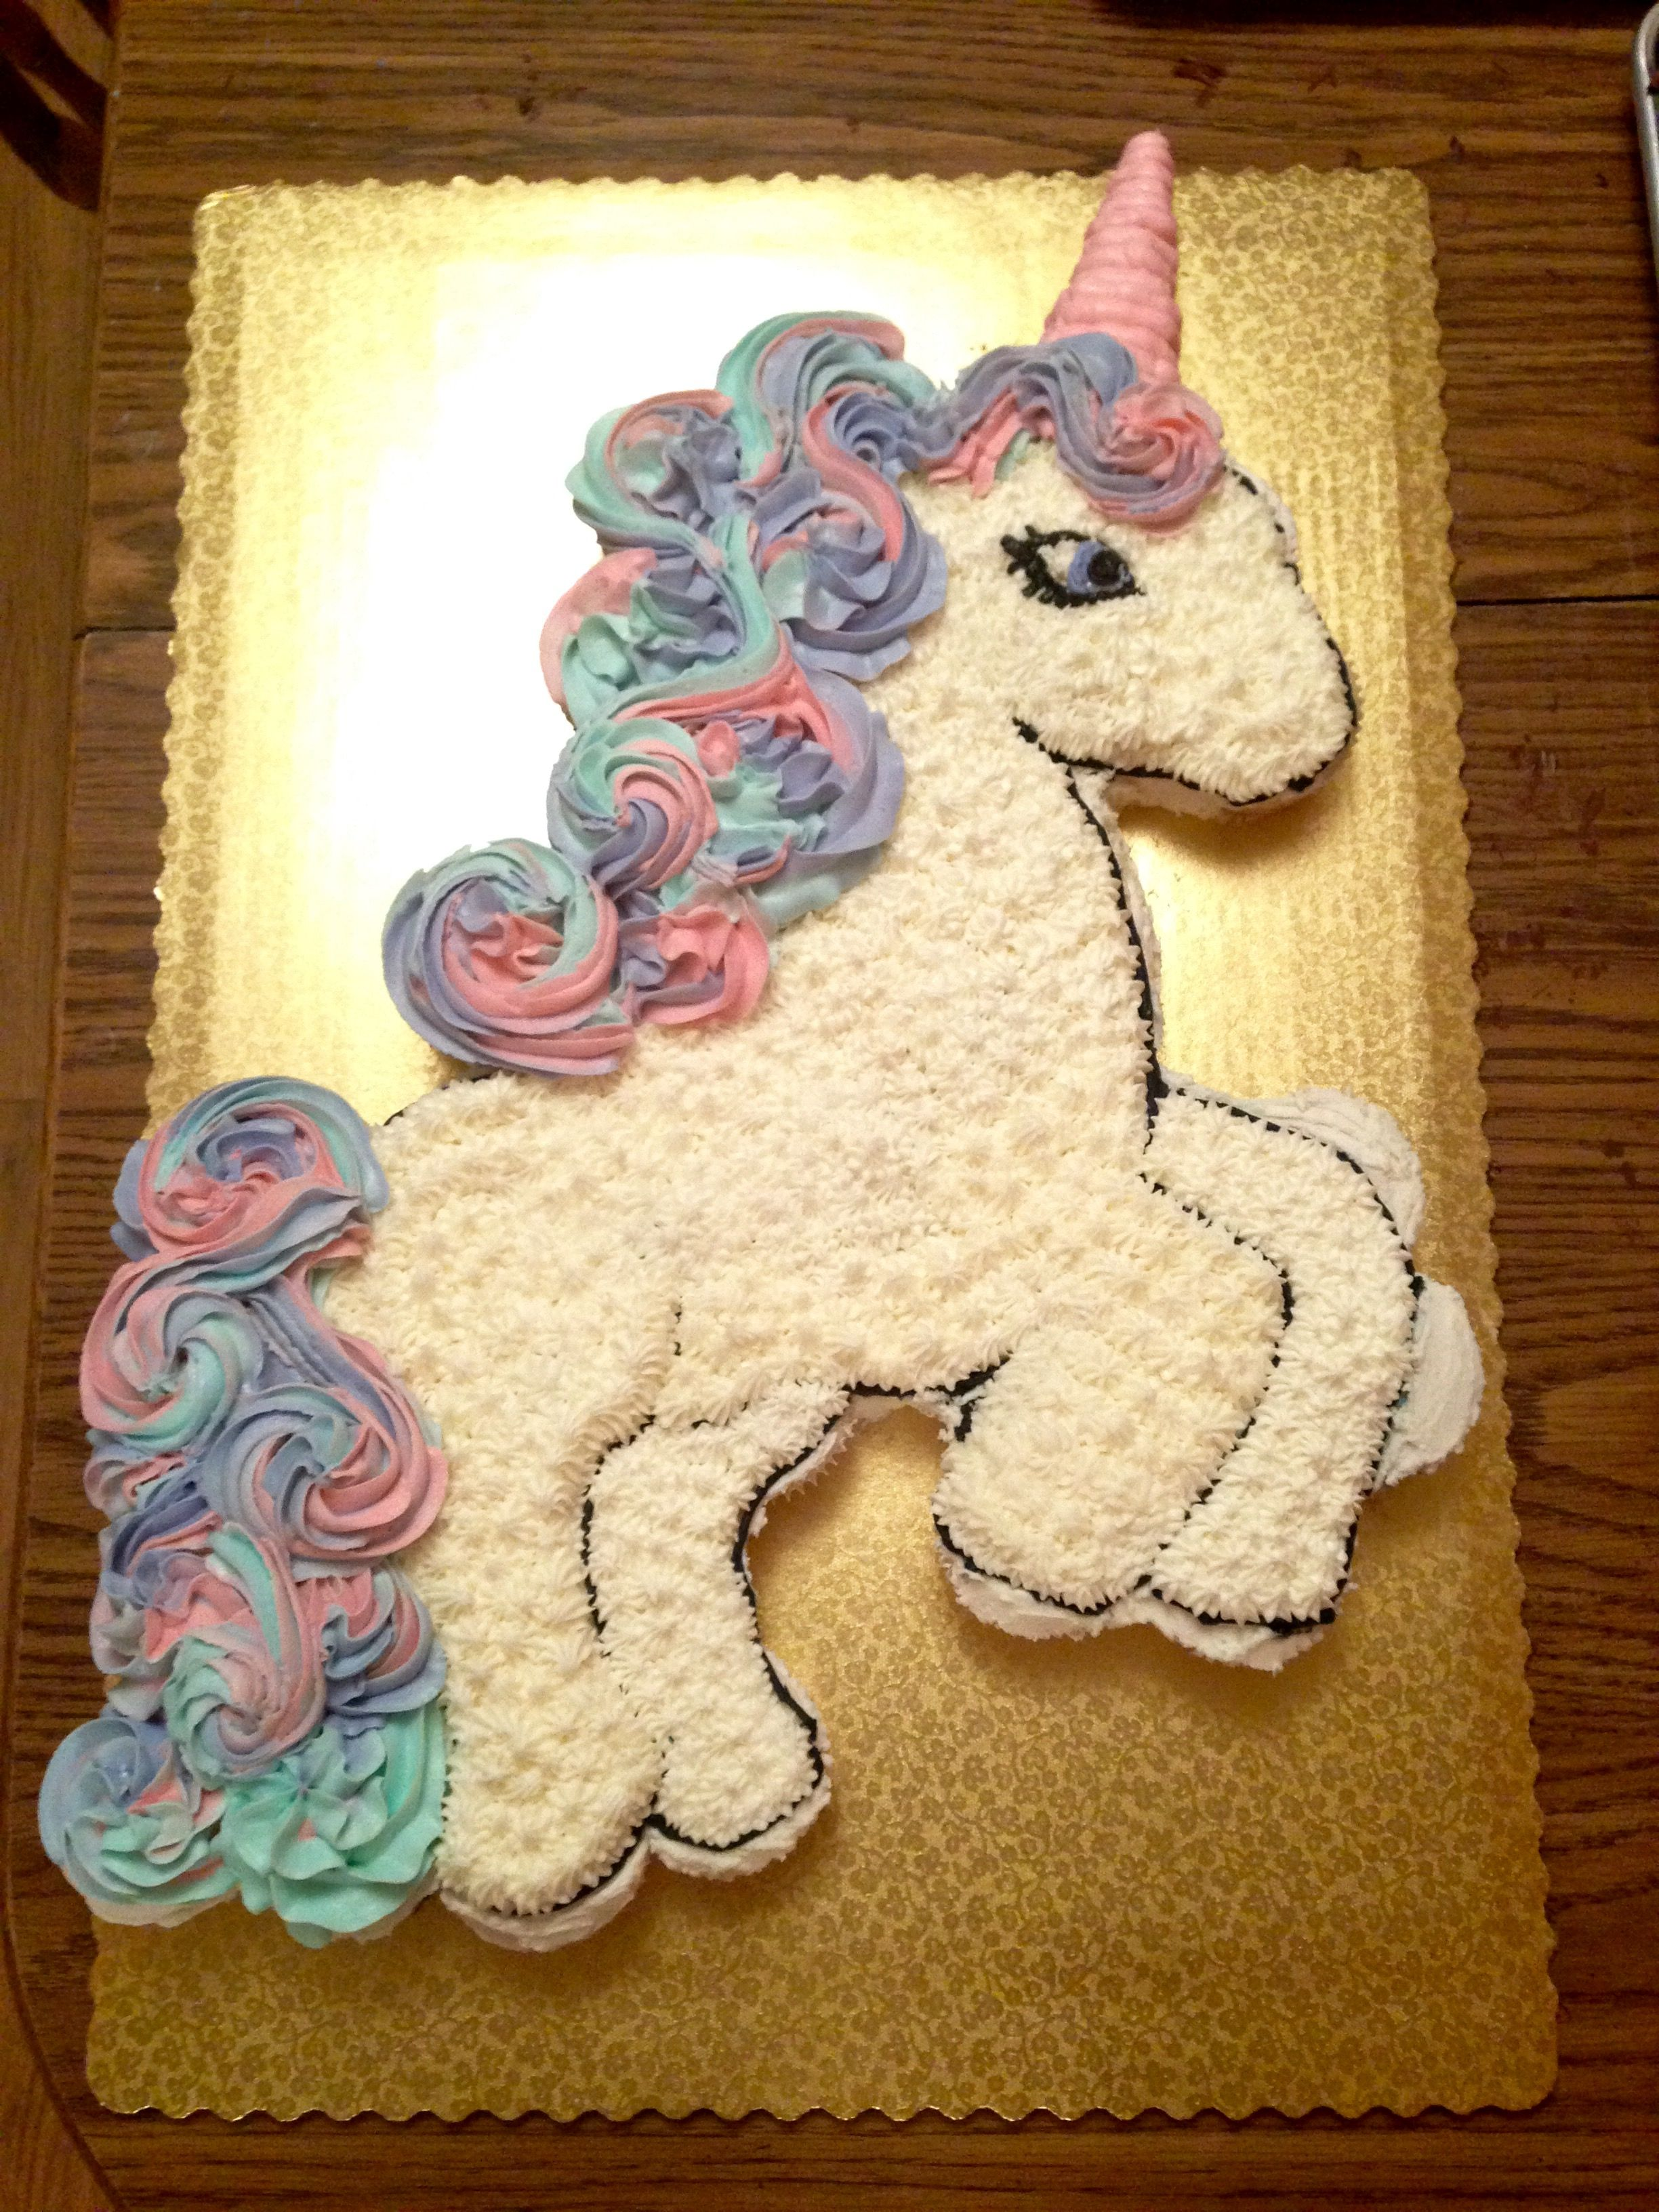 Unicorn Cupcake Cake Used About 40 Cupcakes In Both Vanilla And